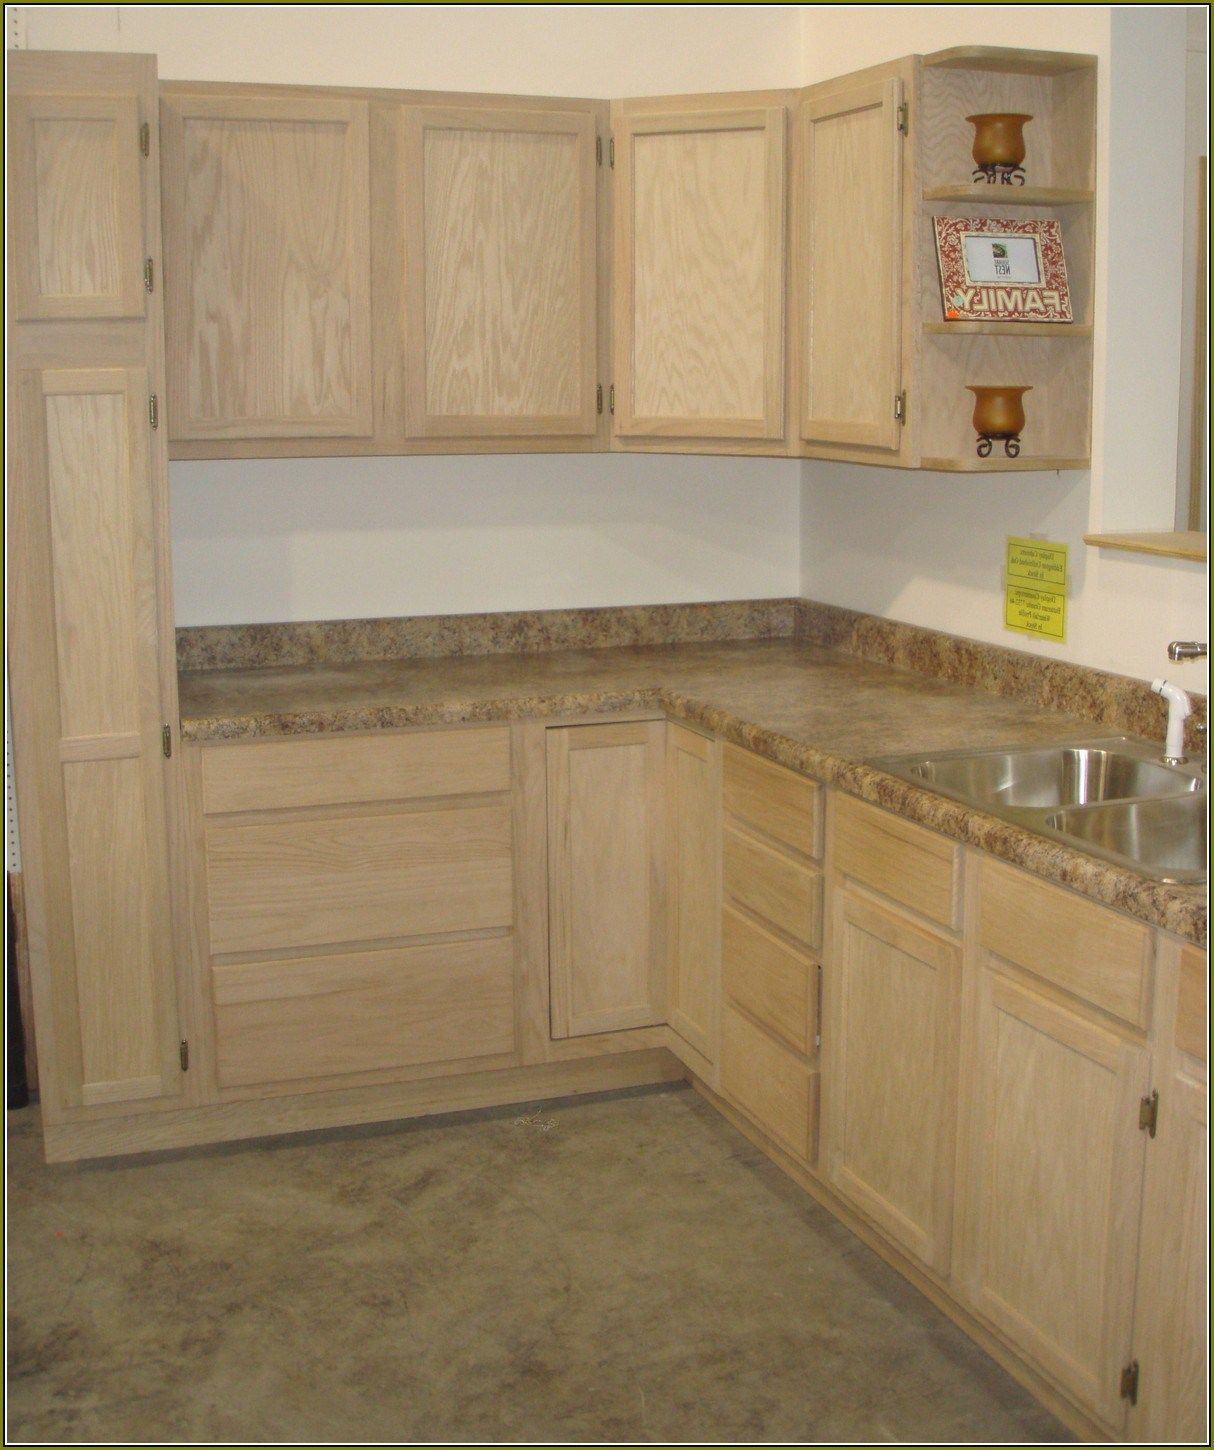 Home Depot Kitchen Cabinets Prices: Home Improvements Refference Unfinished Pine Cabinets Home